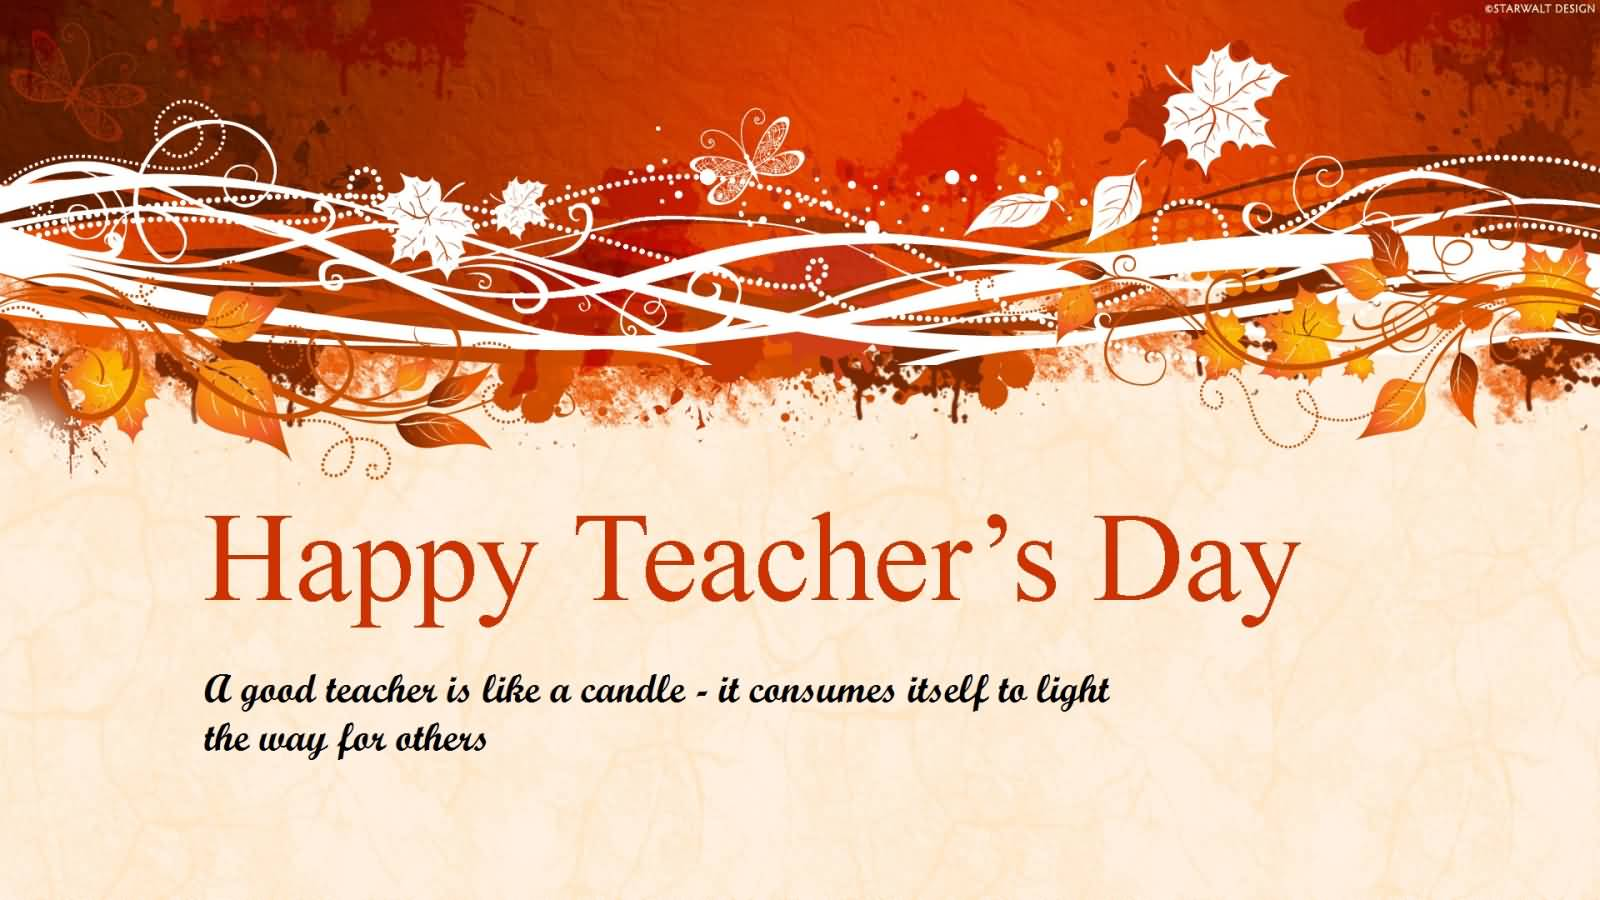 Teachers Day Wishes To Father Pinterest thumbnail